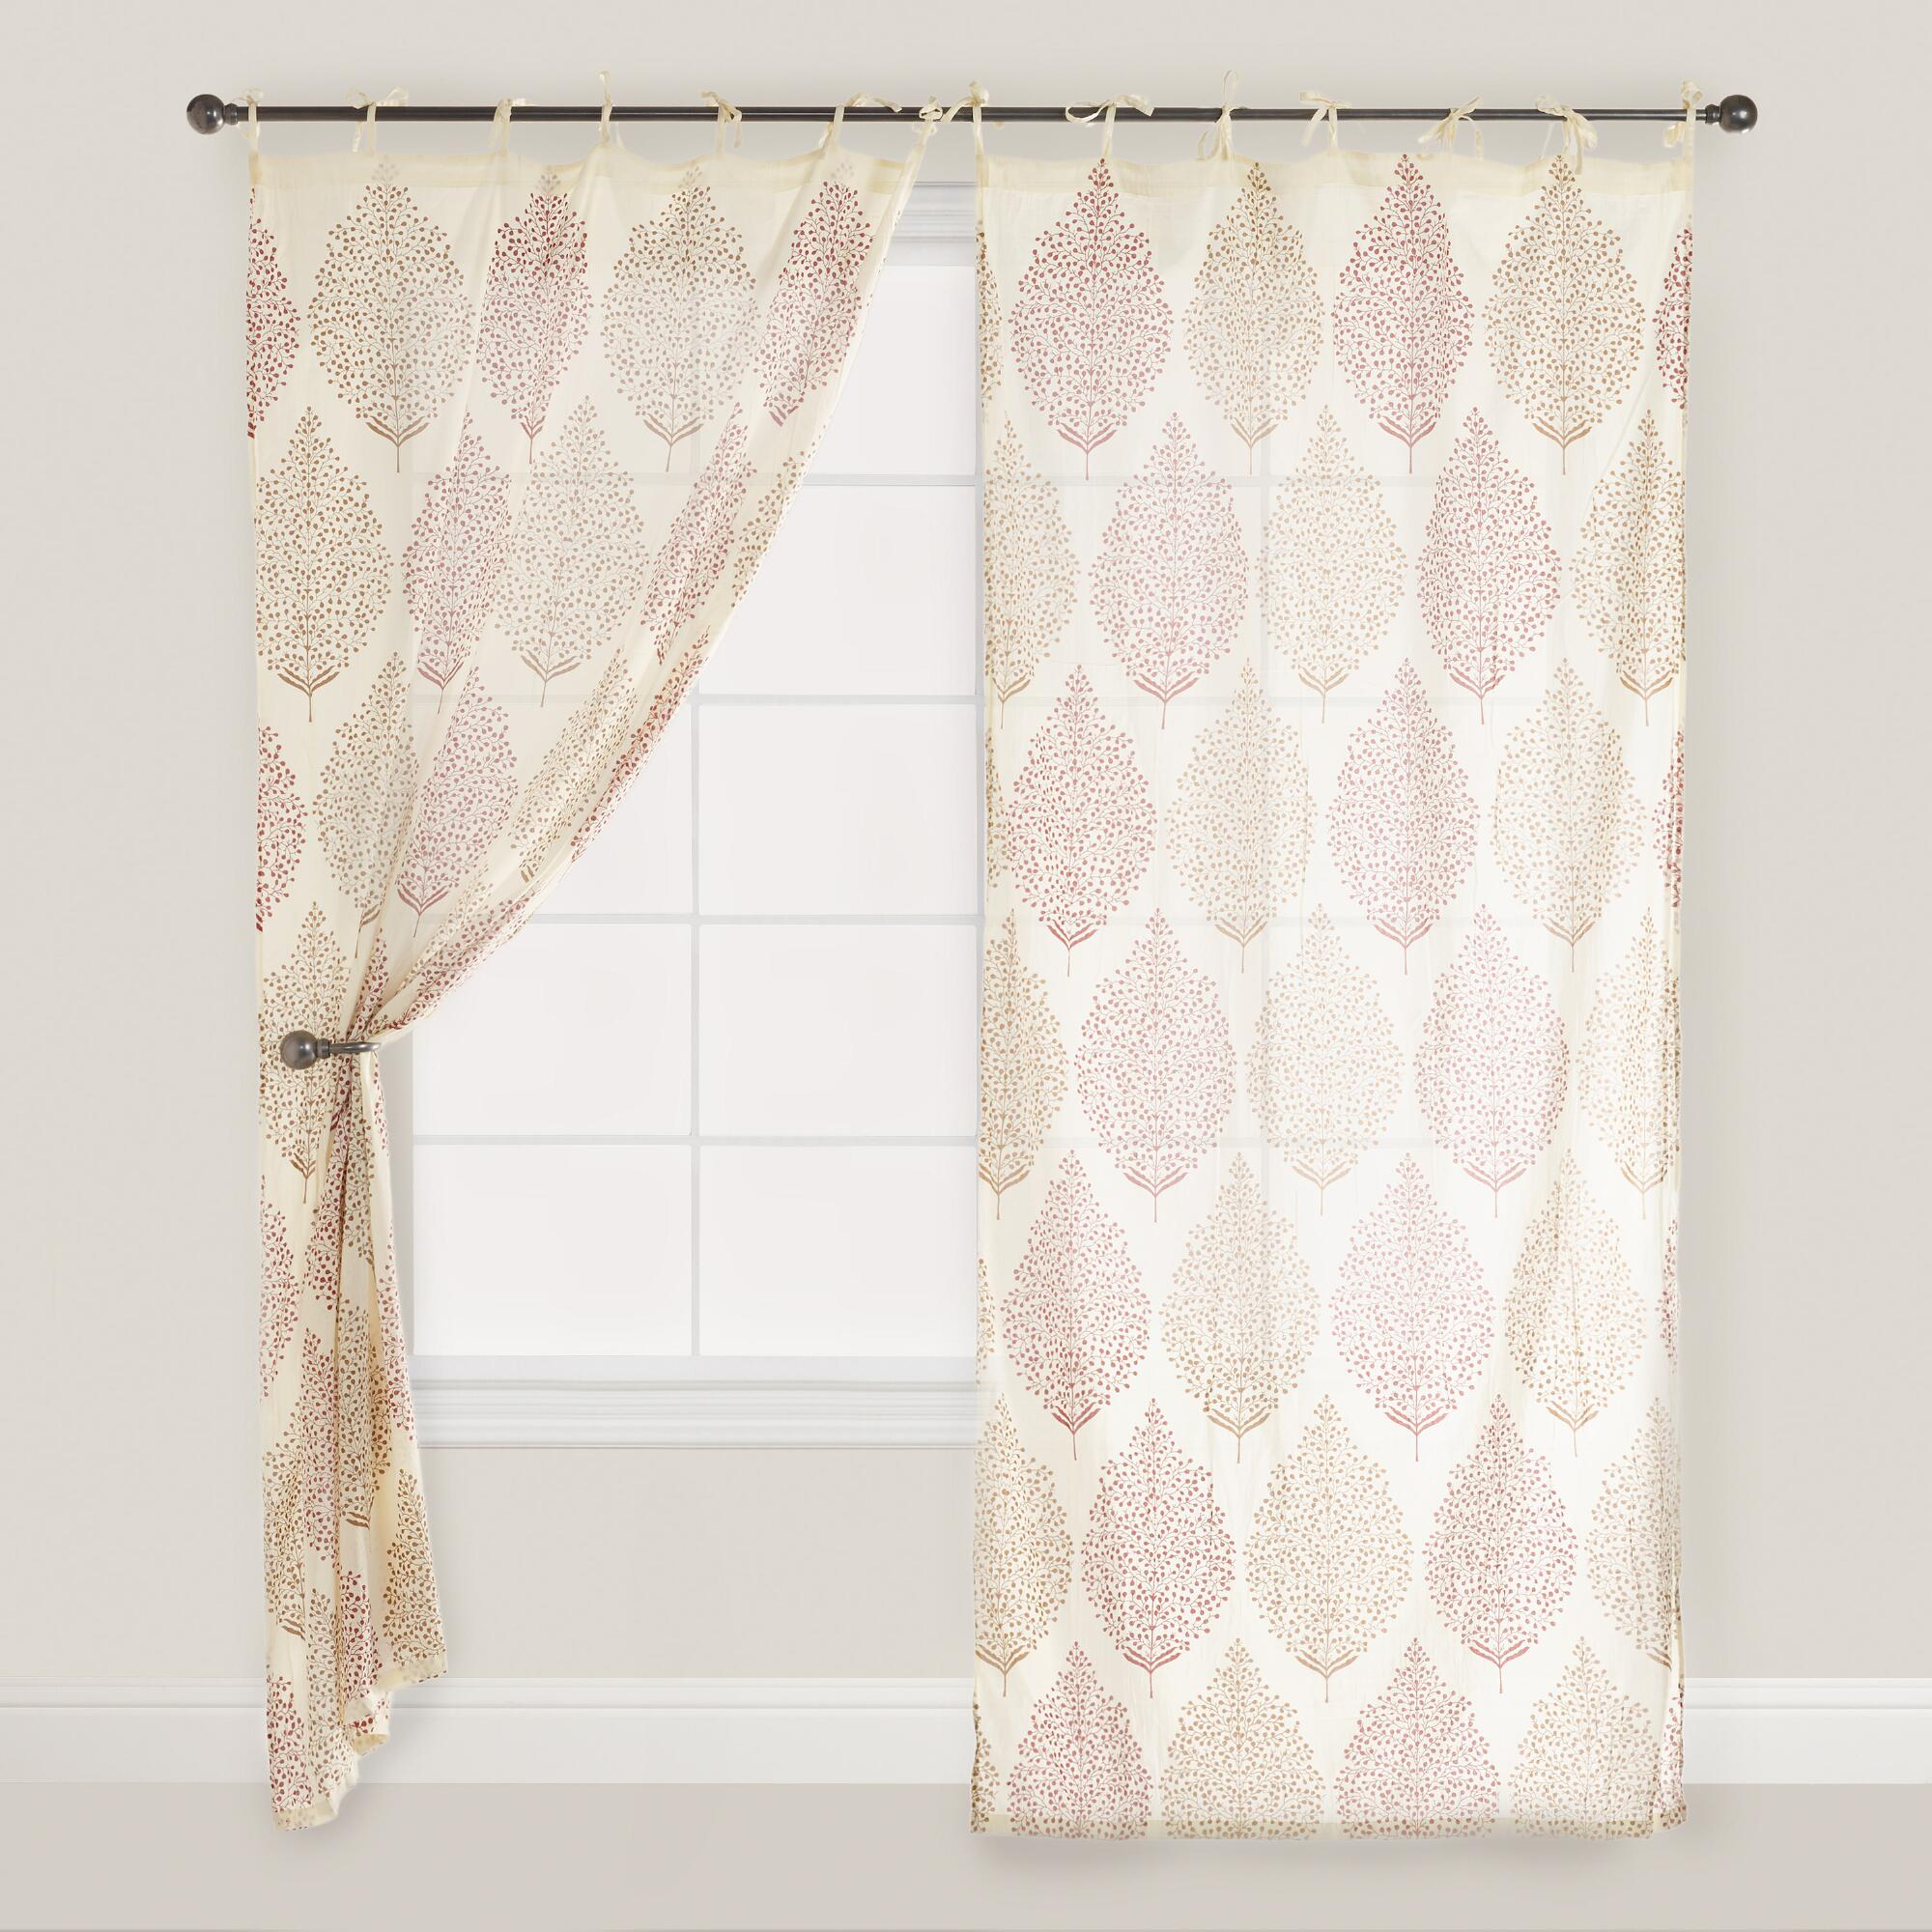 Rust kashvi patterned crinkle voile curtain world market for Patterned curtains and drapes